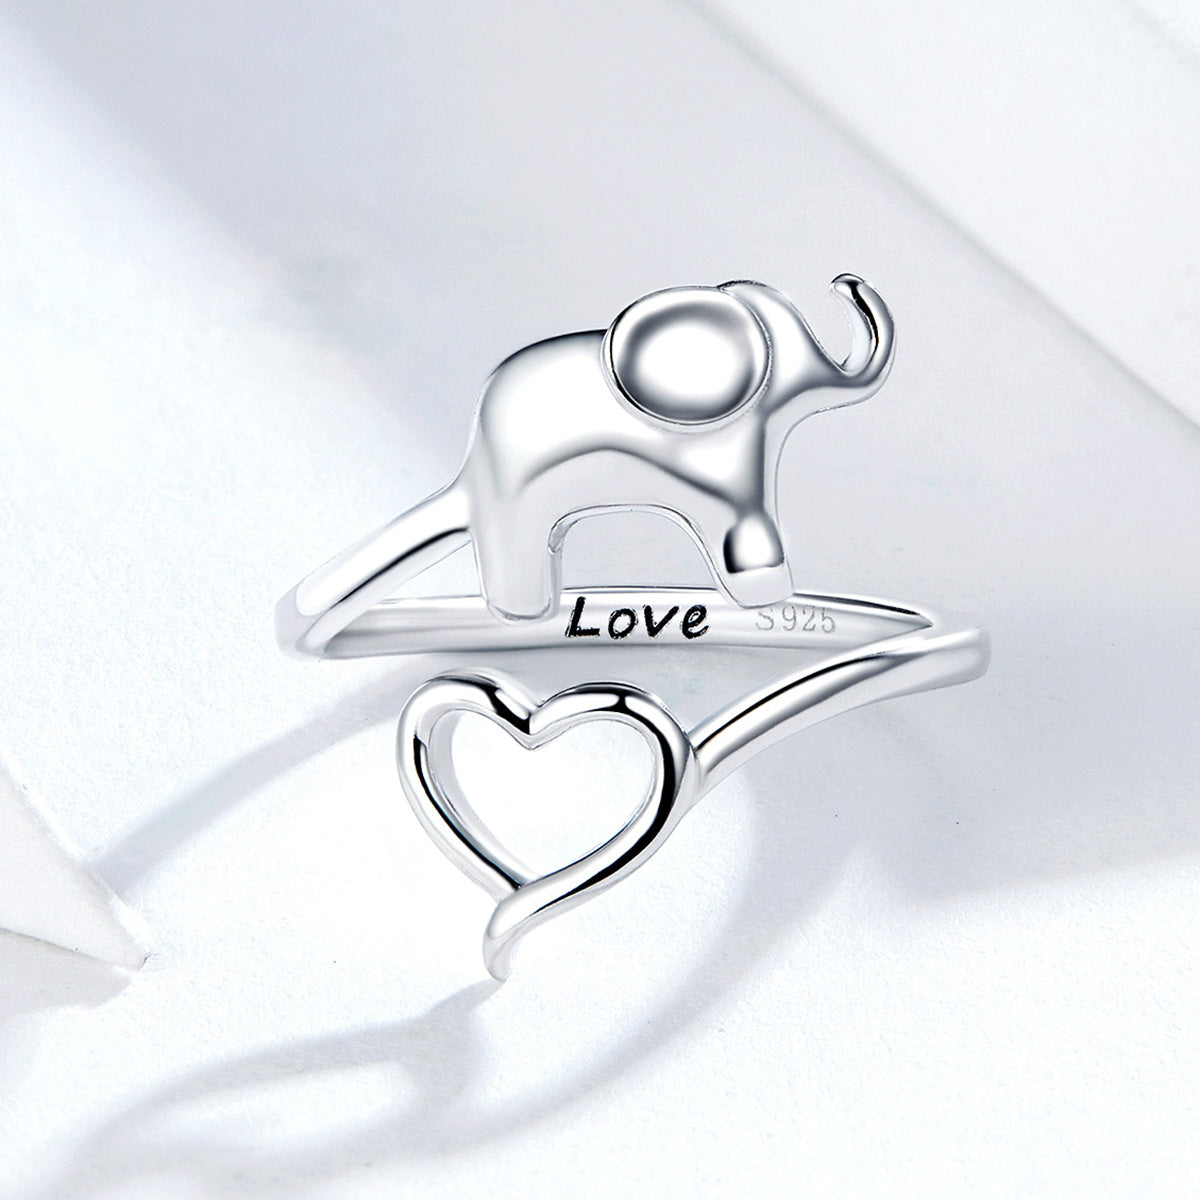 S925 sterling silver elephant heart open ring white gold plated ring